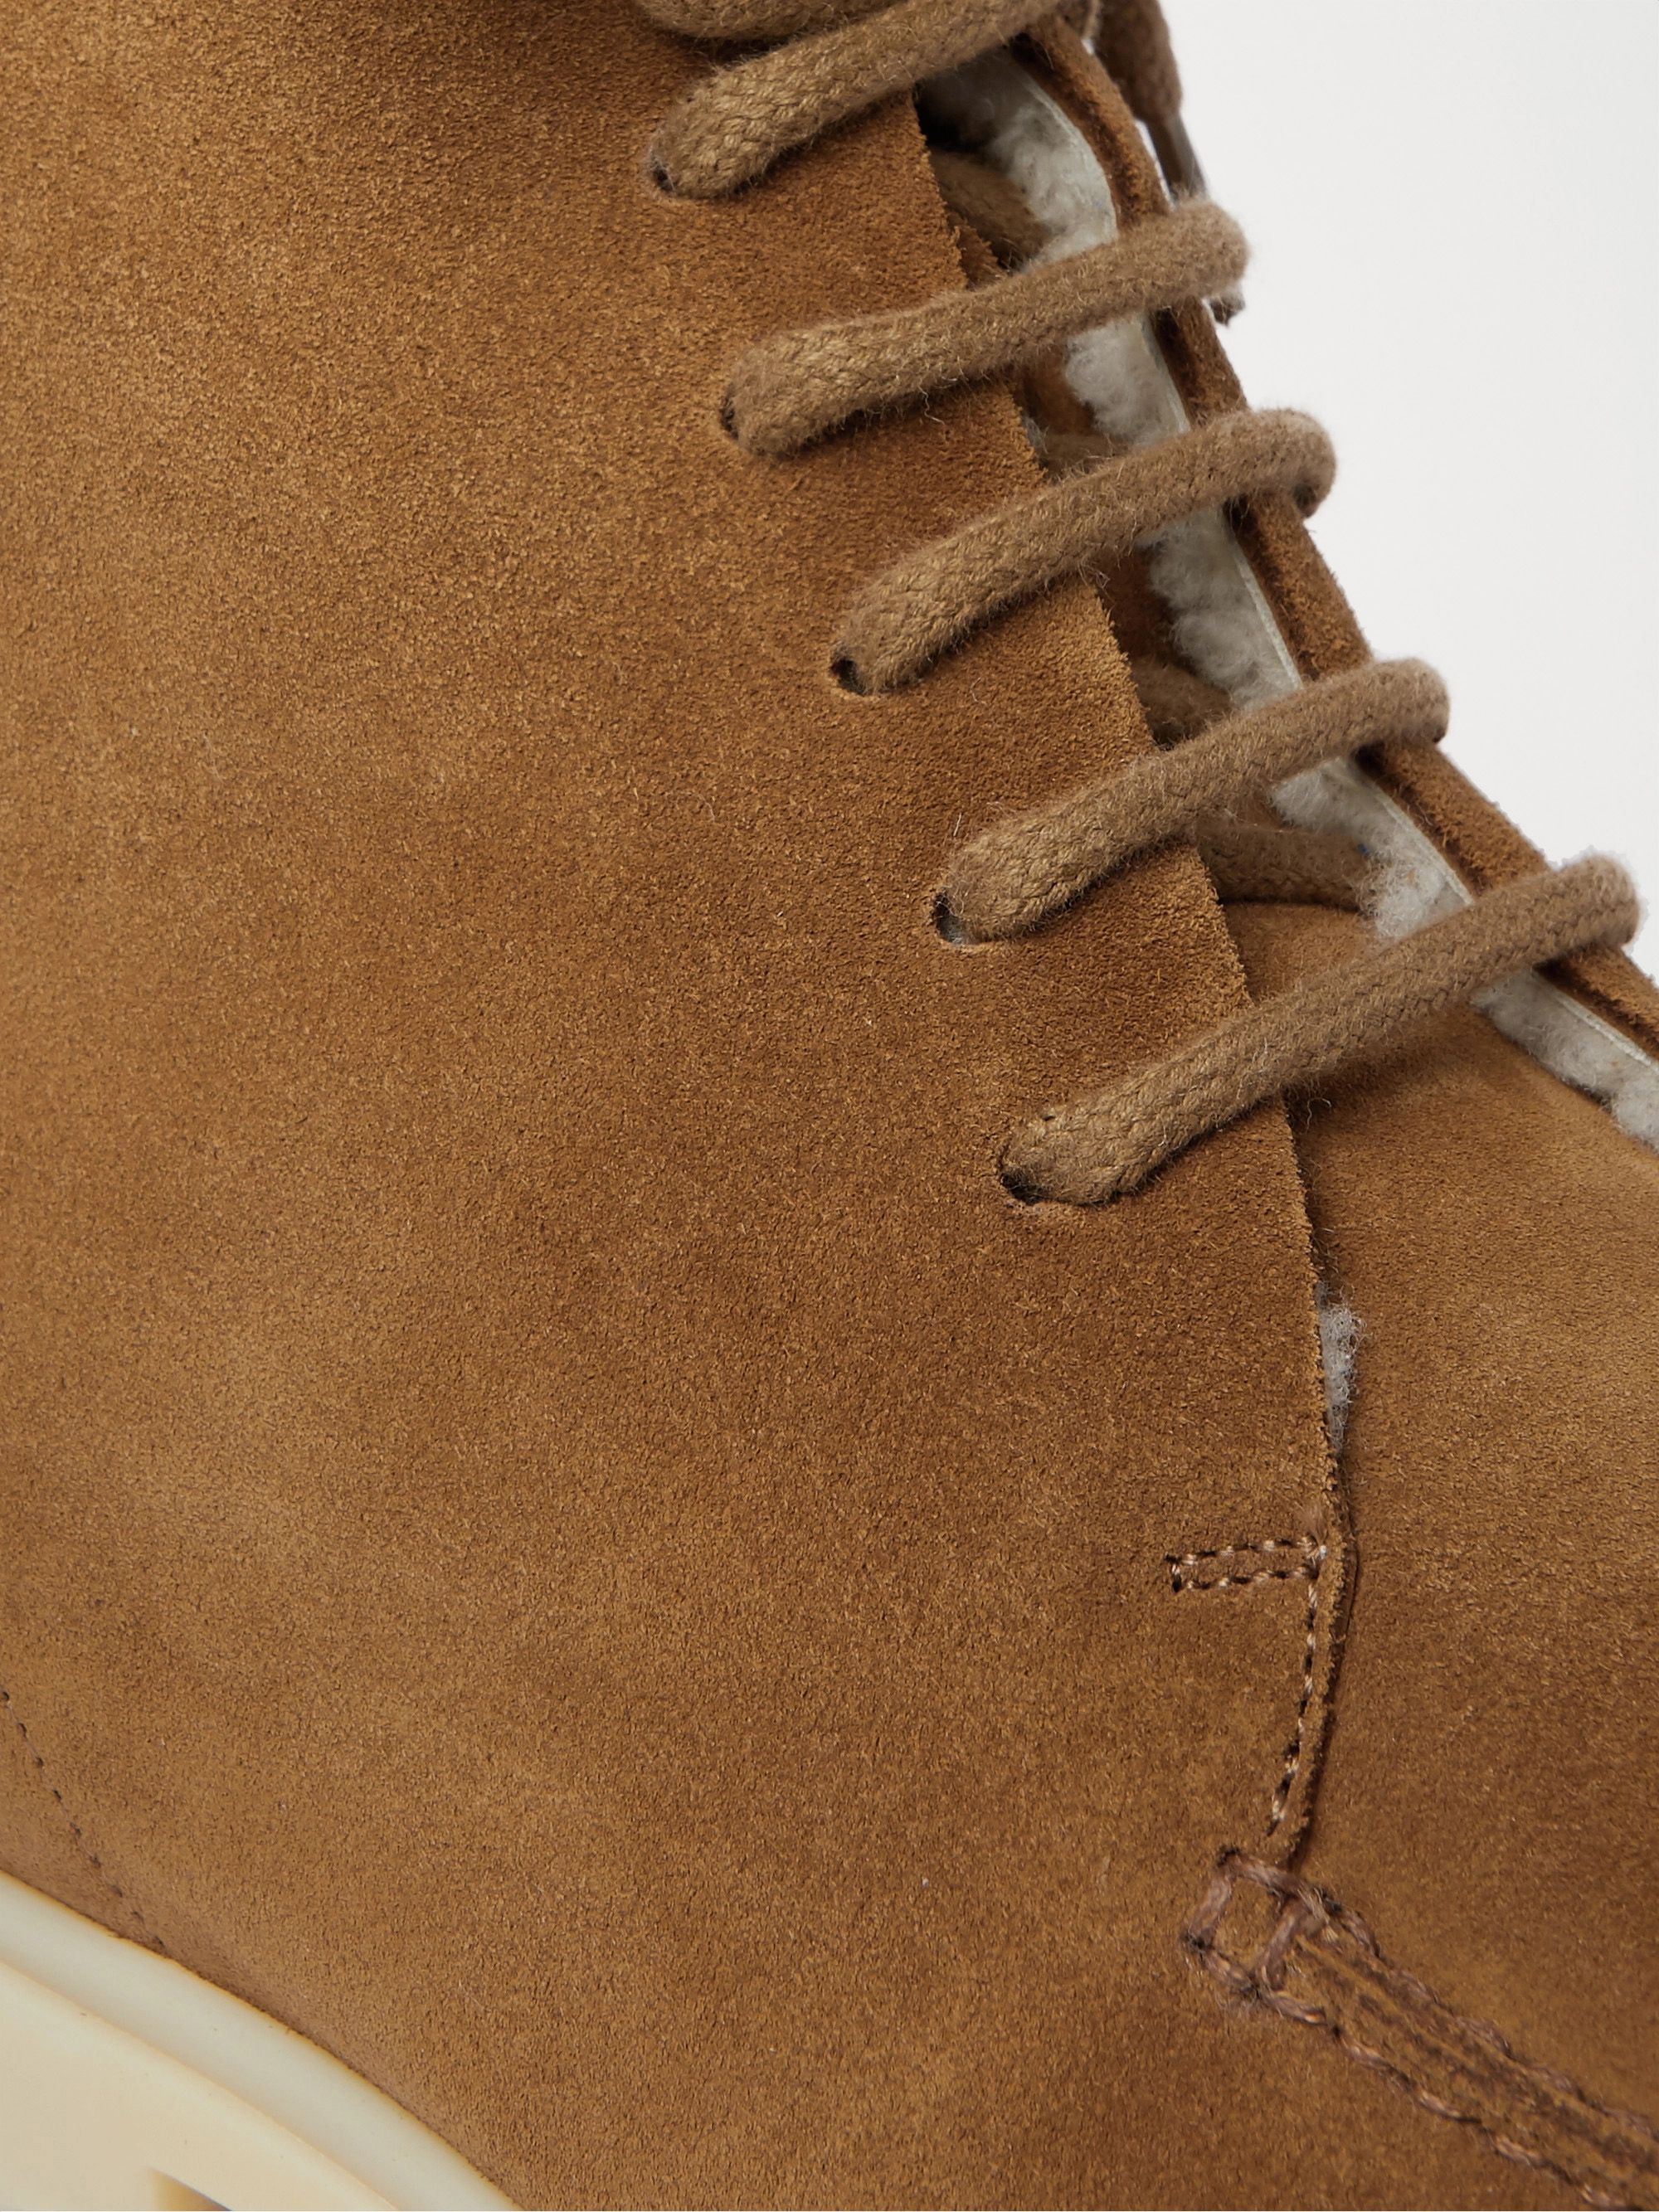 Loro Piana Walk and Walk Shearling-Lined Suede Boots